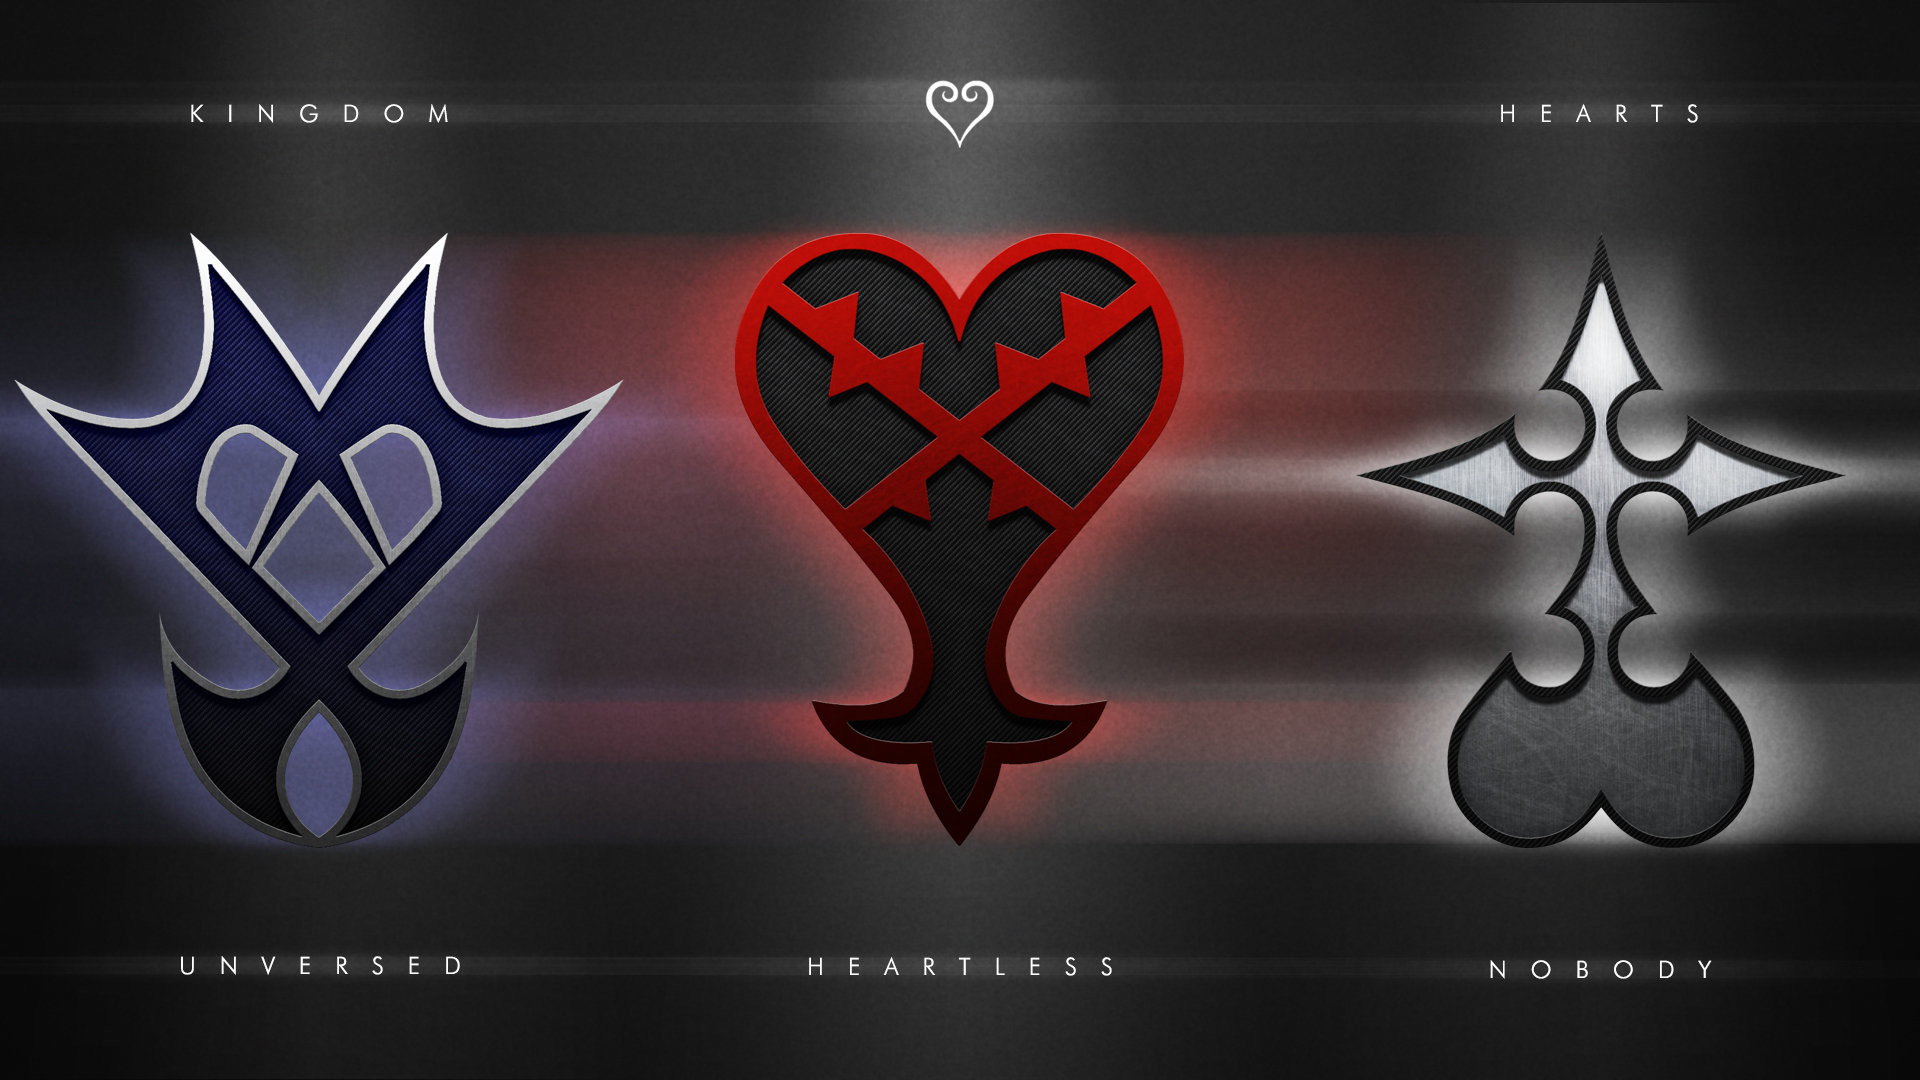 1920x1080 Wallpaper with all 3 of the Kingdom Hearts emblems I did so far; Unversed,  Heartless and Nobody. Individual wallpapers here: Unversed - [link]  Heartless.